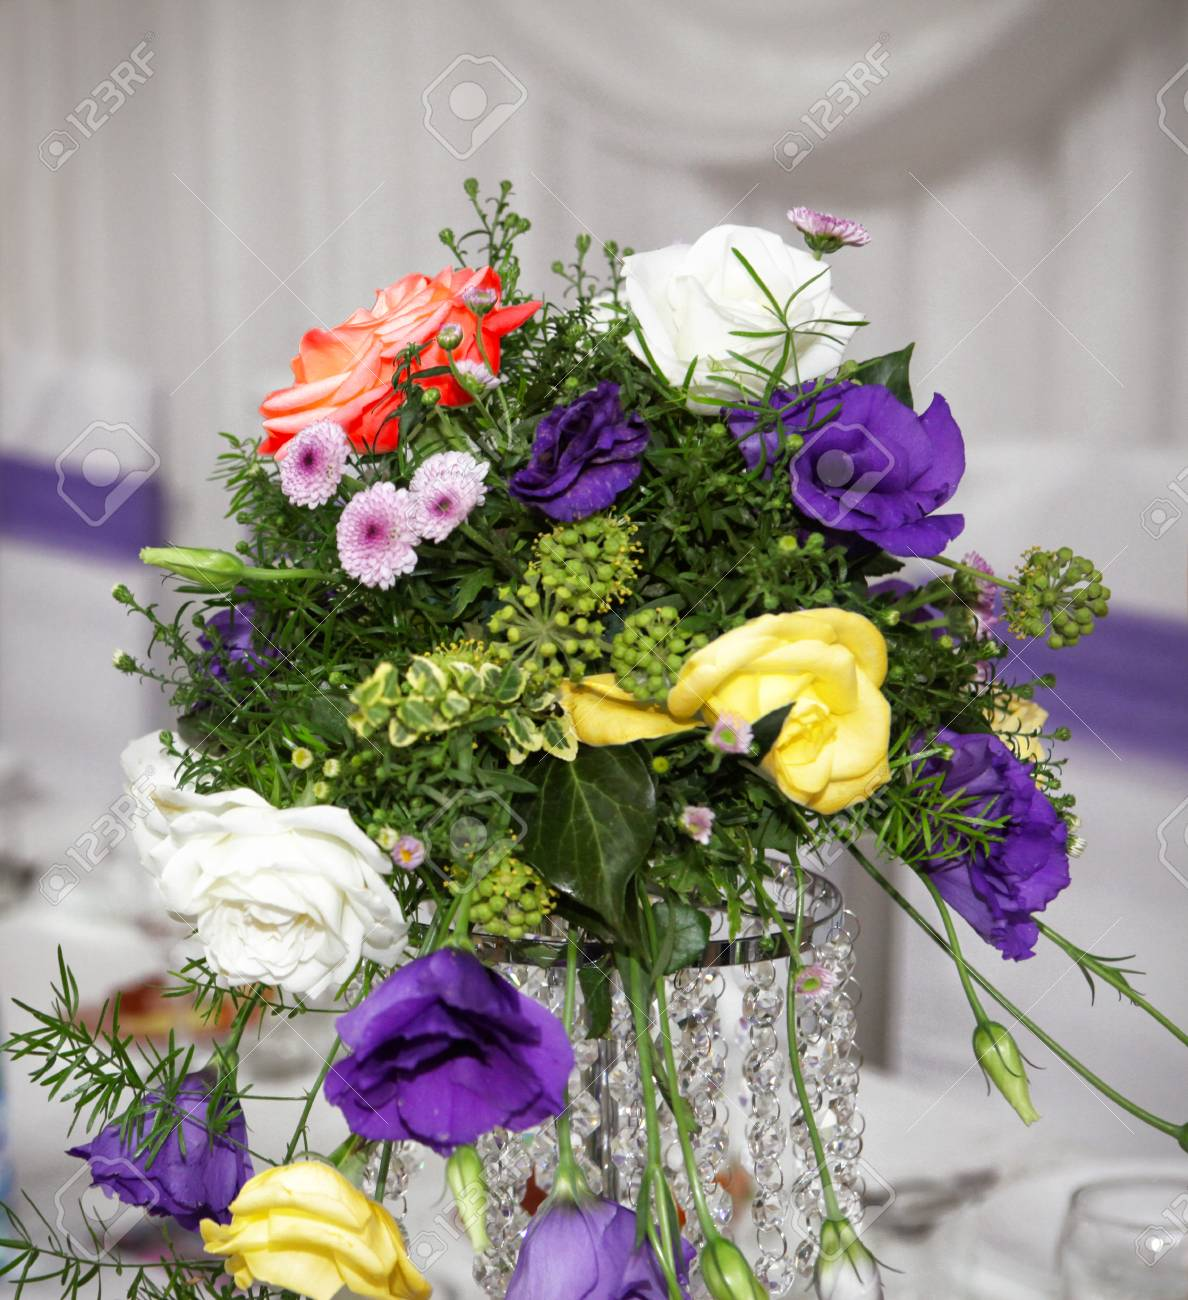 Beautiful Wedding Bouquet Wedding Table Decoration Lizenzfreie Fotos